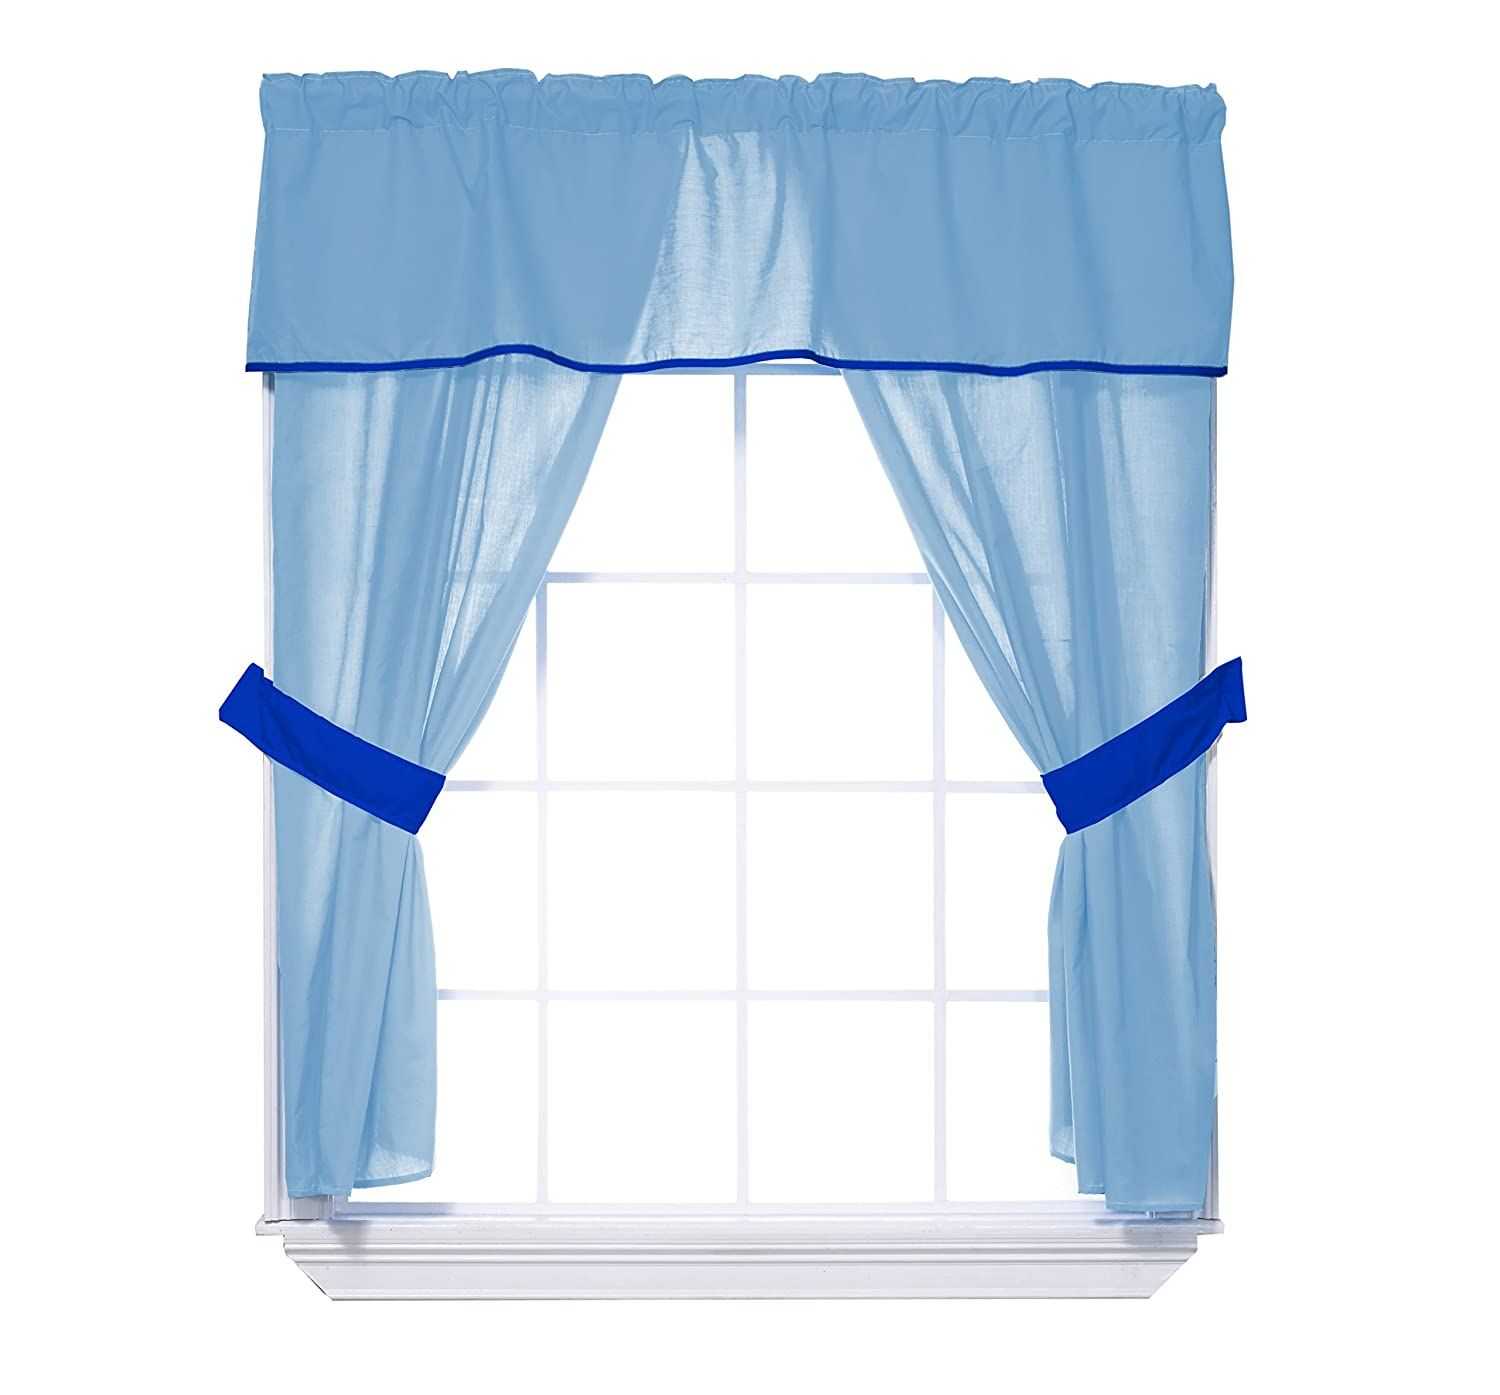 Super intense SALE Baby Doll Bedding Solid Two Curtain Tone 5-Piece Max 83% OFF Valance Window